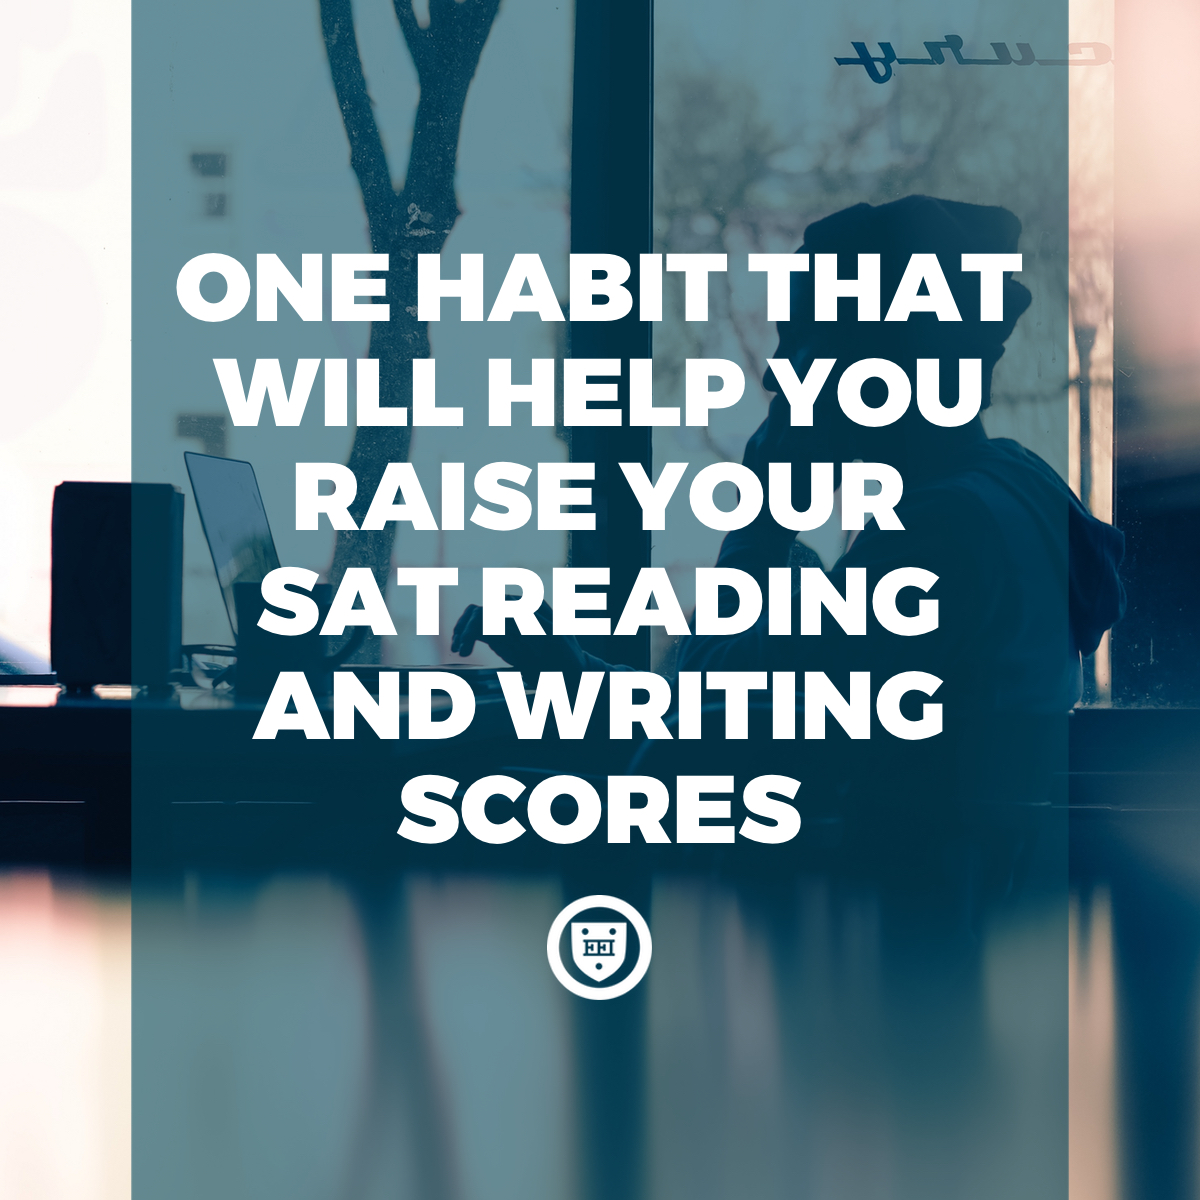 One Habit That Will Help You Raise Your SAT Reading and Writing Scores